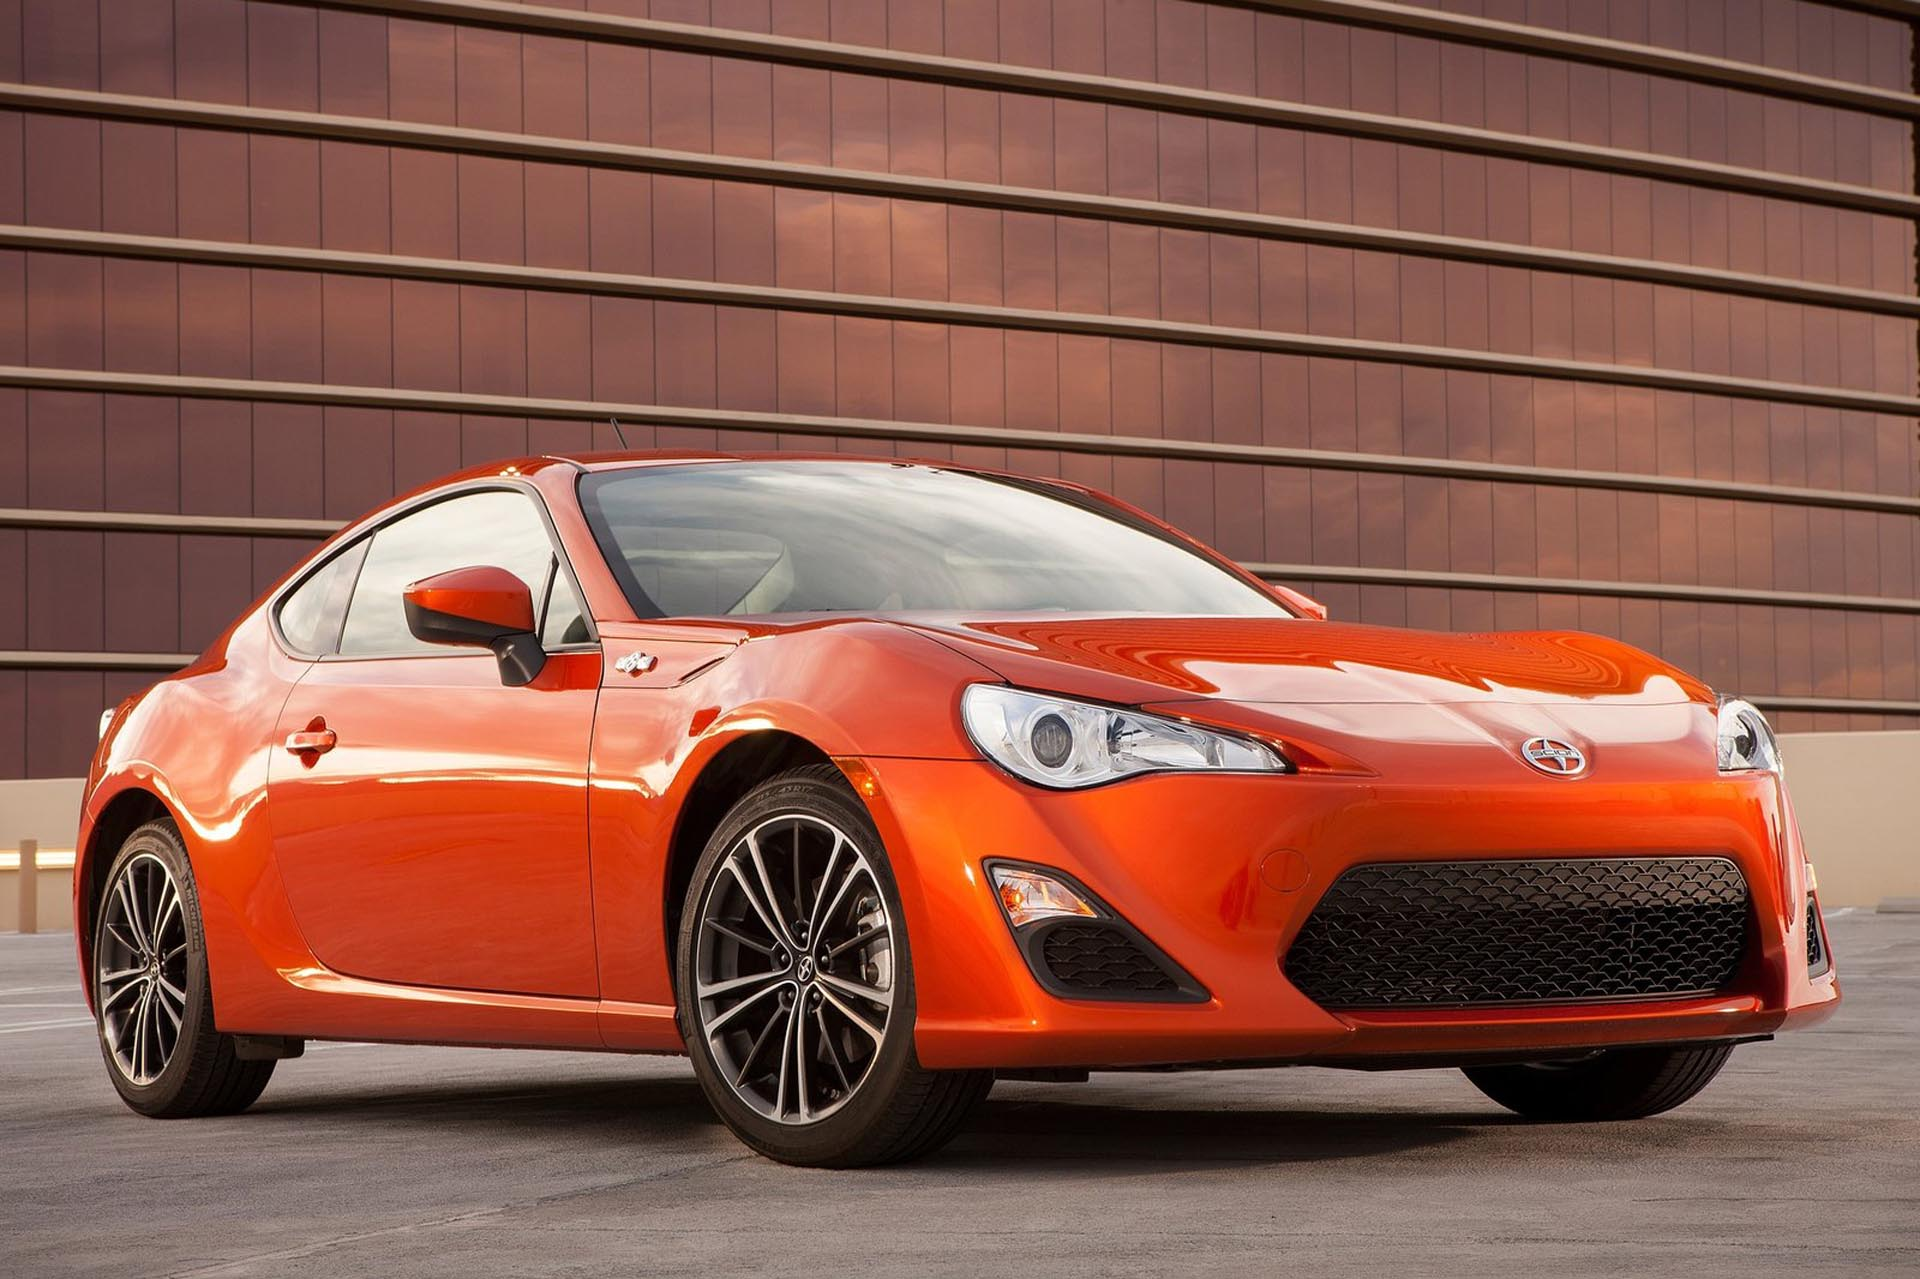 <b>Why:</b> Your ex wanted you to read her mind, anticipate her every mood, and react to her every whim with instantaneousness and precision. Now, it's your turn to see what that's like. The FR-S/BRZ twins do all of this for you, and without mood swings, drama, and dropping of the dreaded 'F' word: FINE.